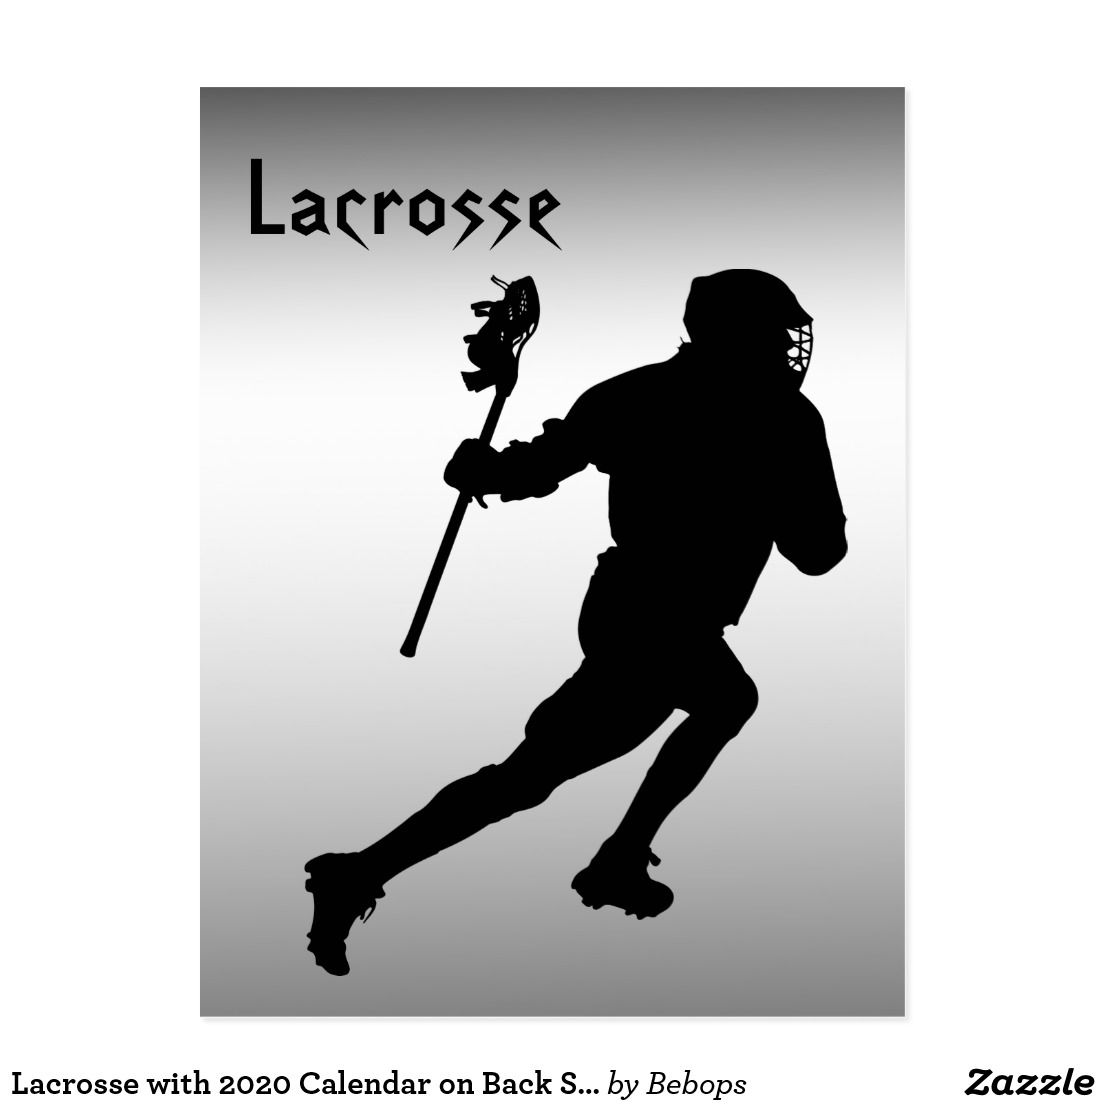 Lacrosse With 2020 Calendar On Back Sports Postcard Zazzle Com Lacrosse Postcard Sports